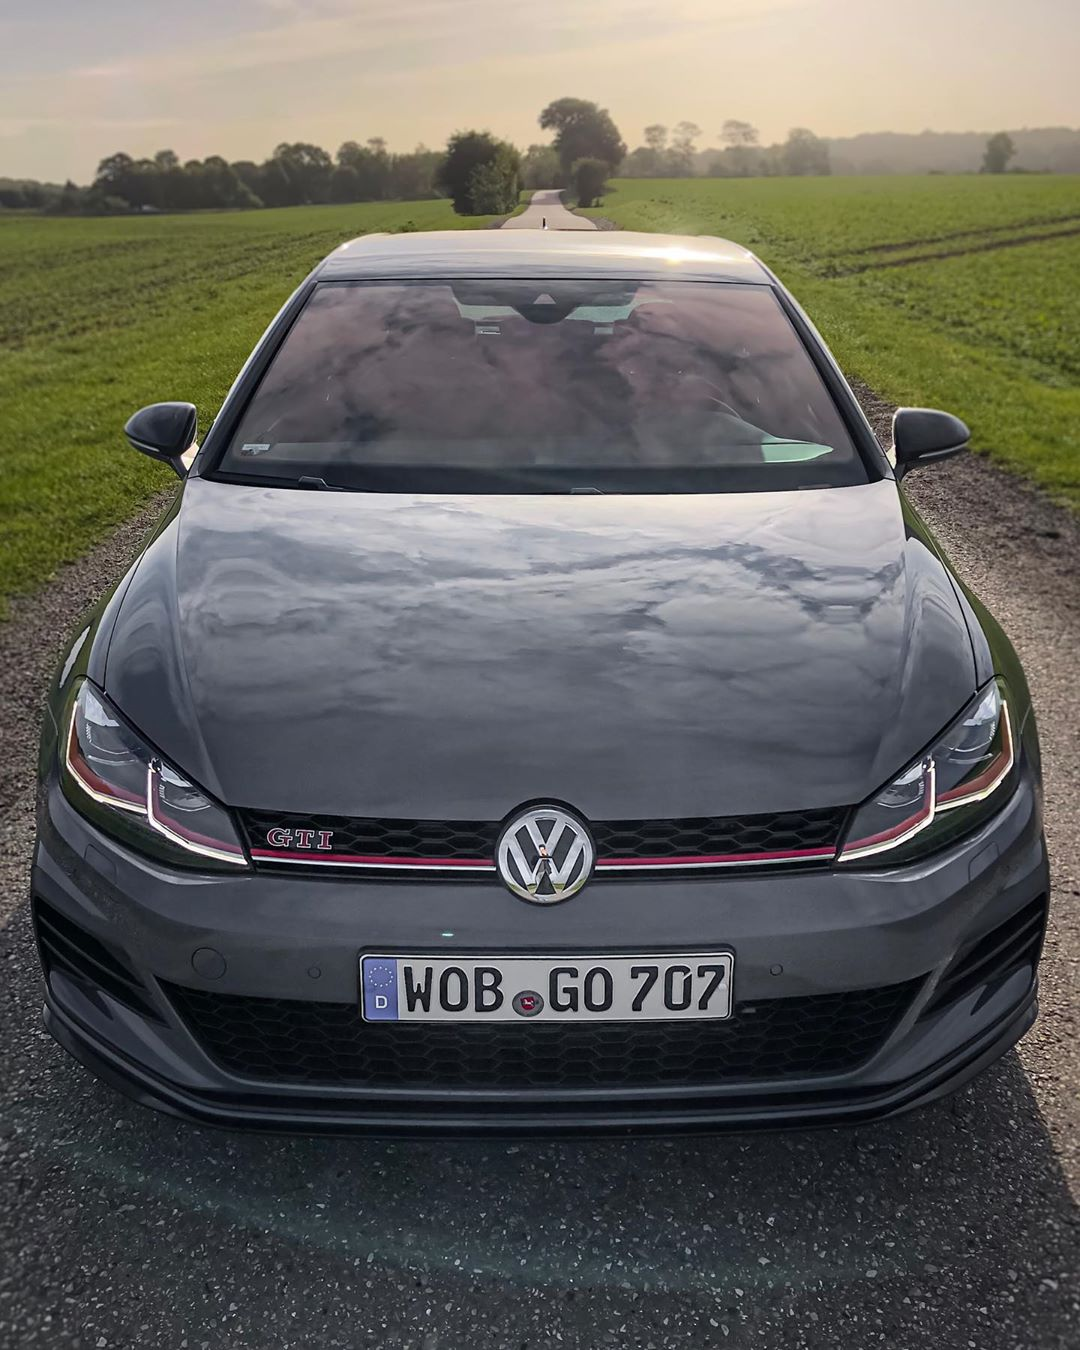 """Yipppeeaahh🤩 We drove """"GO 707"""" in Portugal this year and now have this TCR in Germany! You know what this means….yep! Autobahn accelerations💨🏁😬 #volkswagen #golfgti #golfgtitcr #gti #gtitcr #golf7gti #gticlubsport #automanntv"""